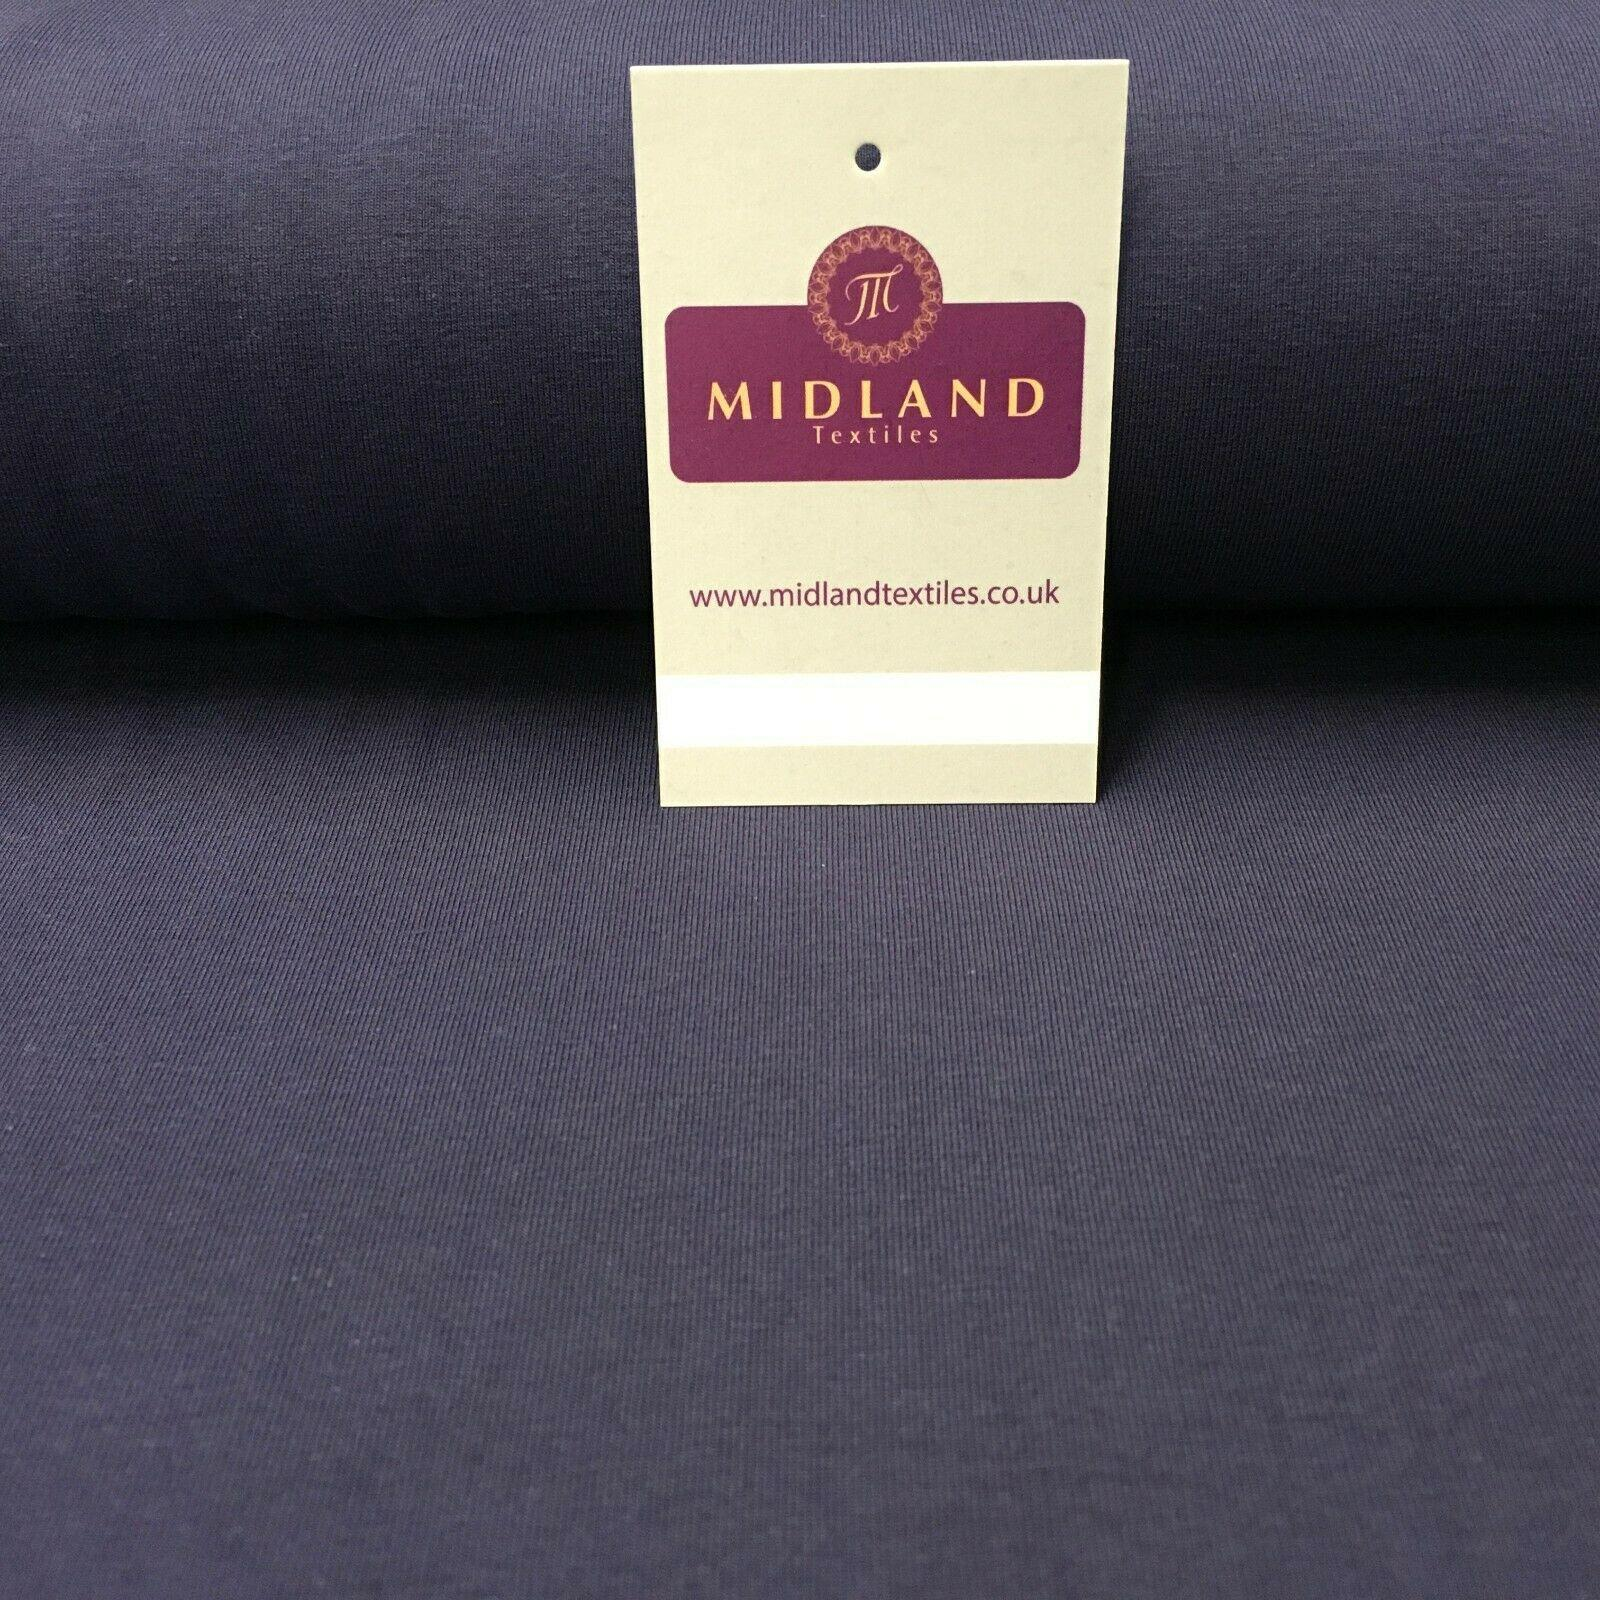 Plain Cotton Spandex knit Jersey Dress Fabric 150cm Wide MD1051 Mtex